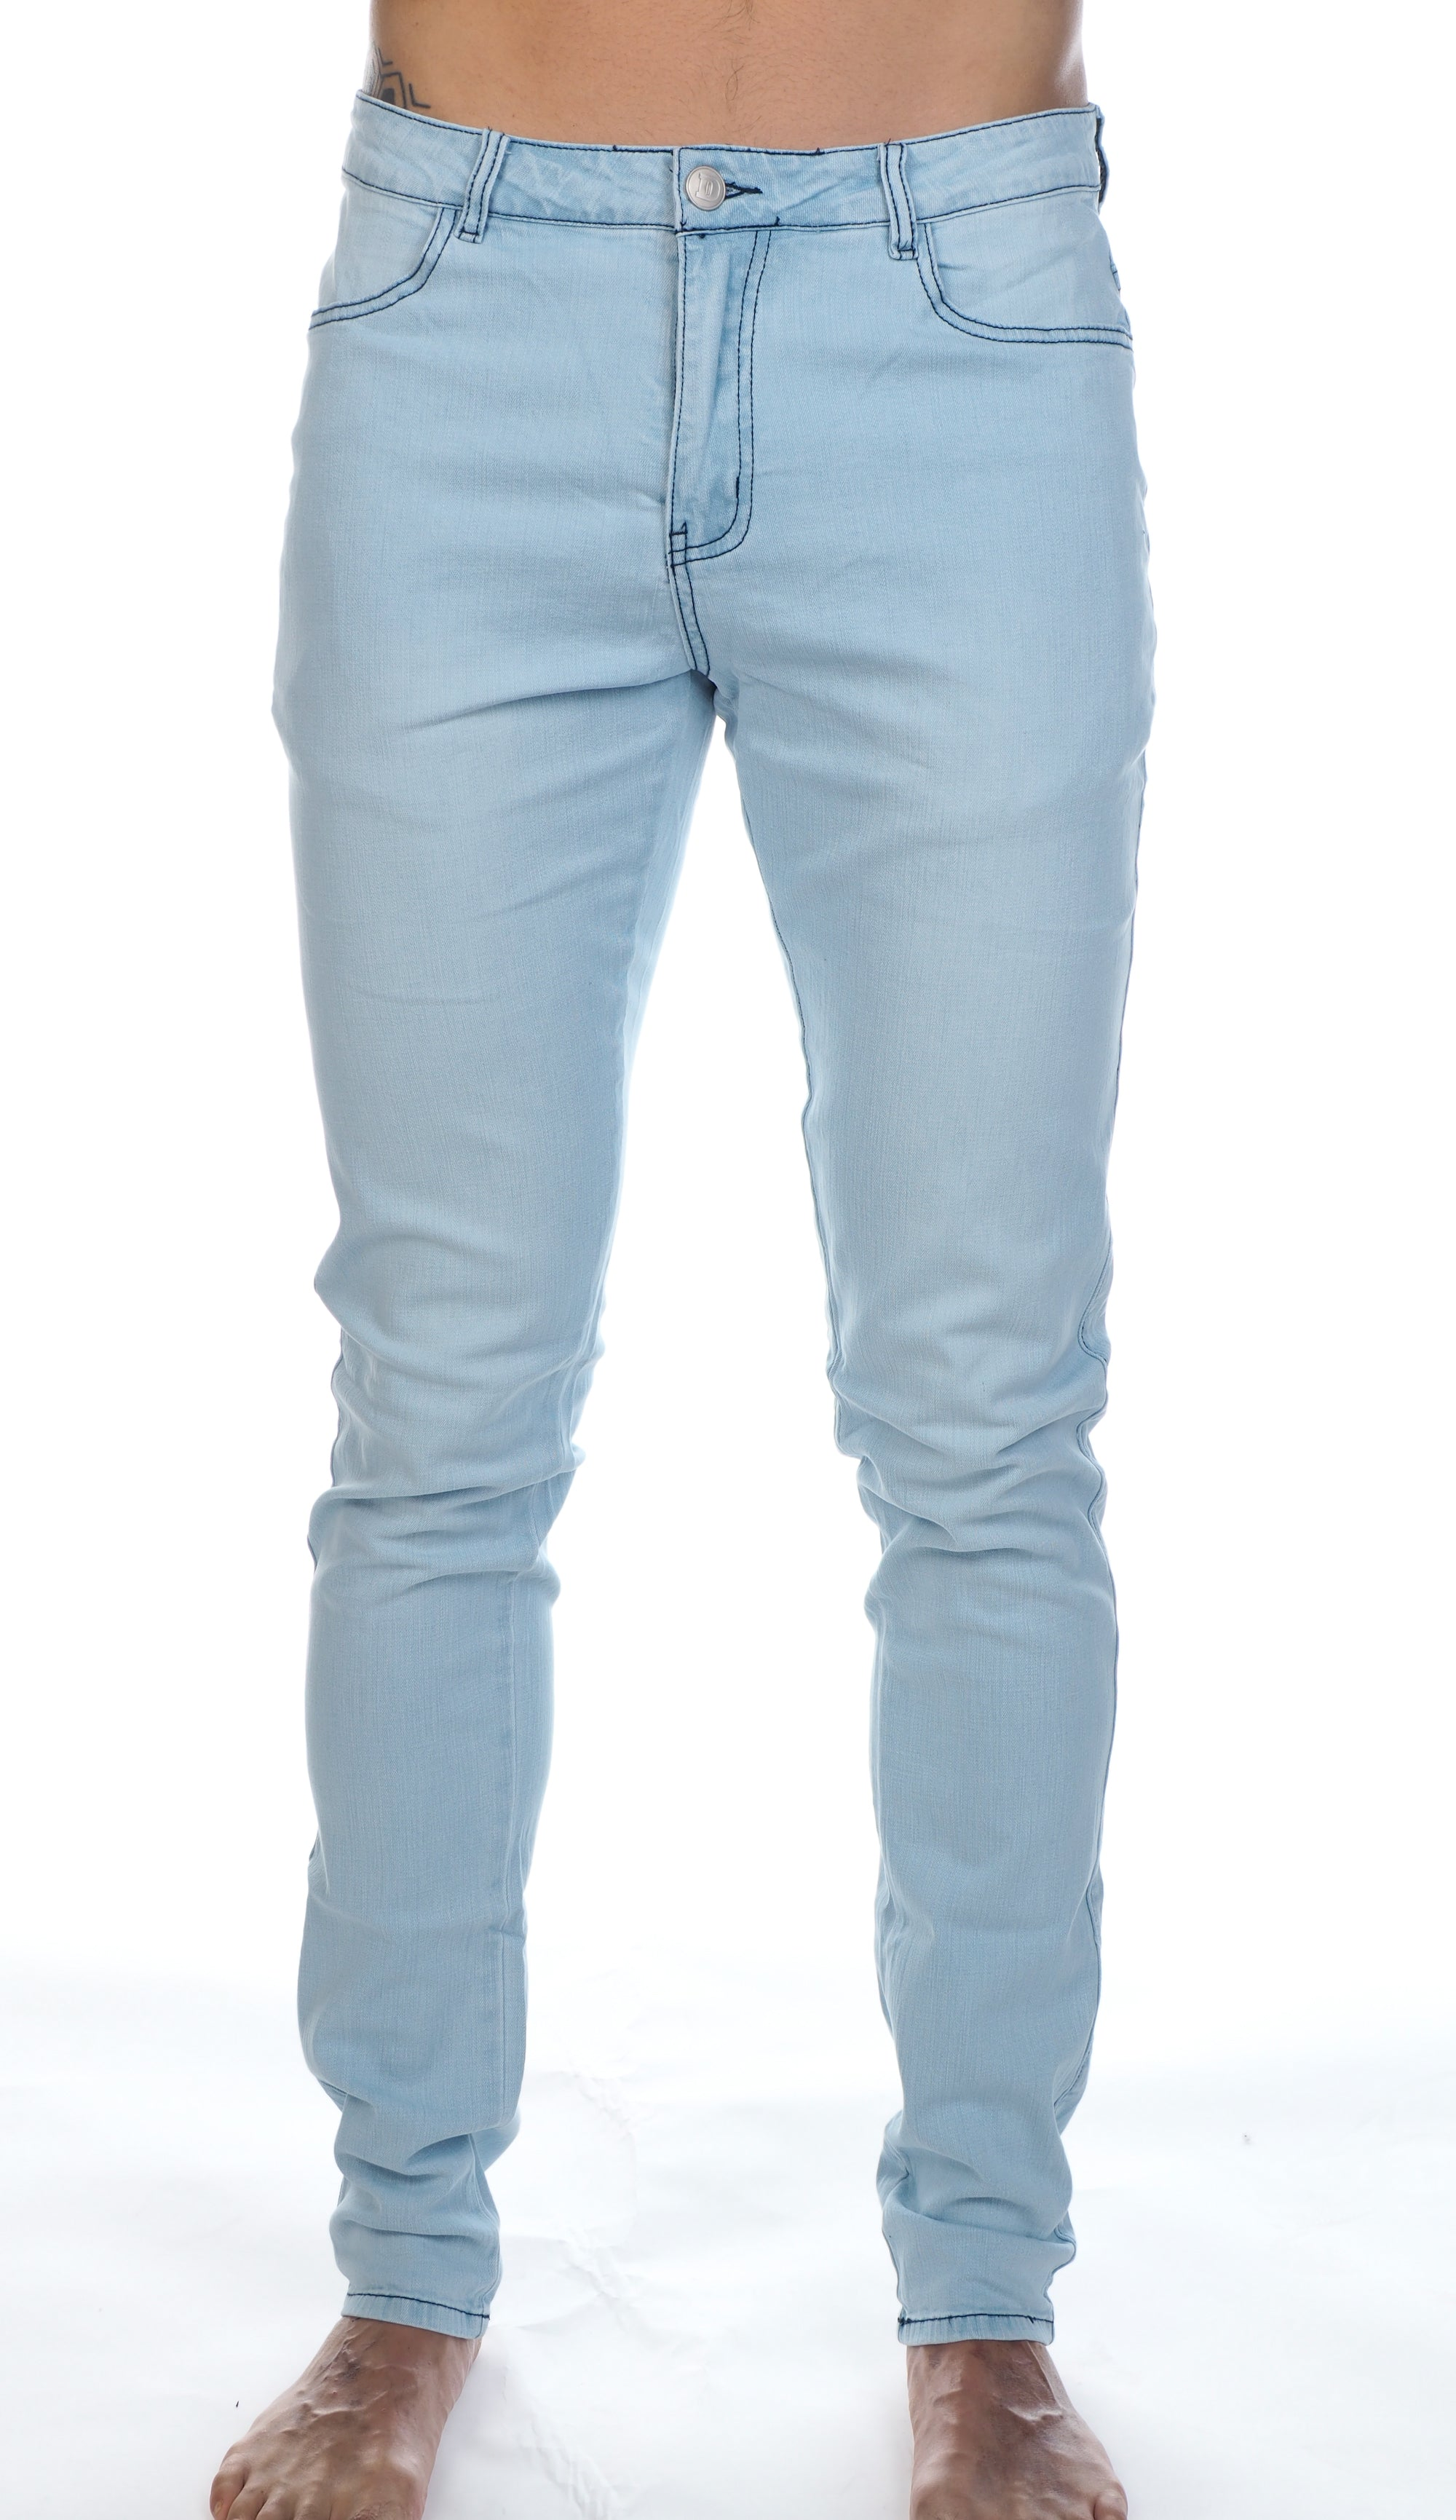 JJ Stretch Jeans - Ice Blue